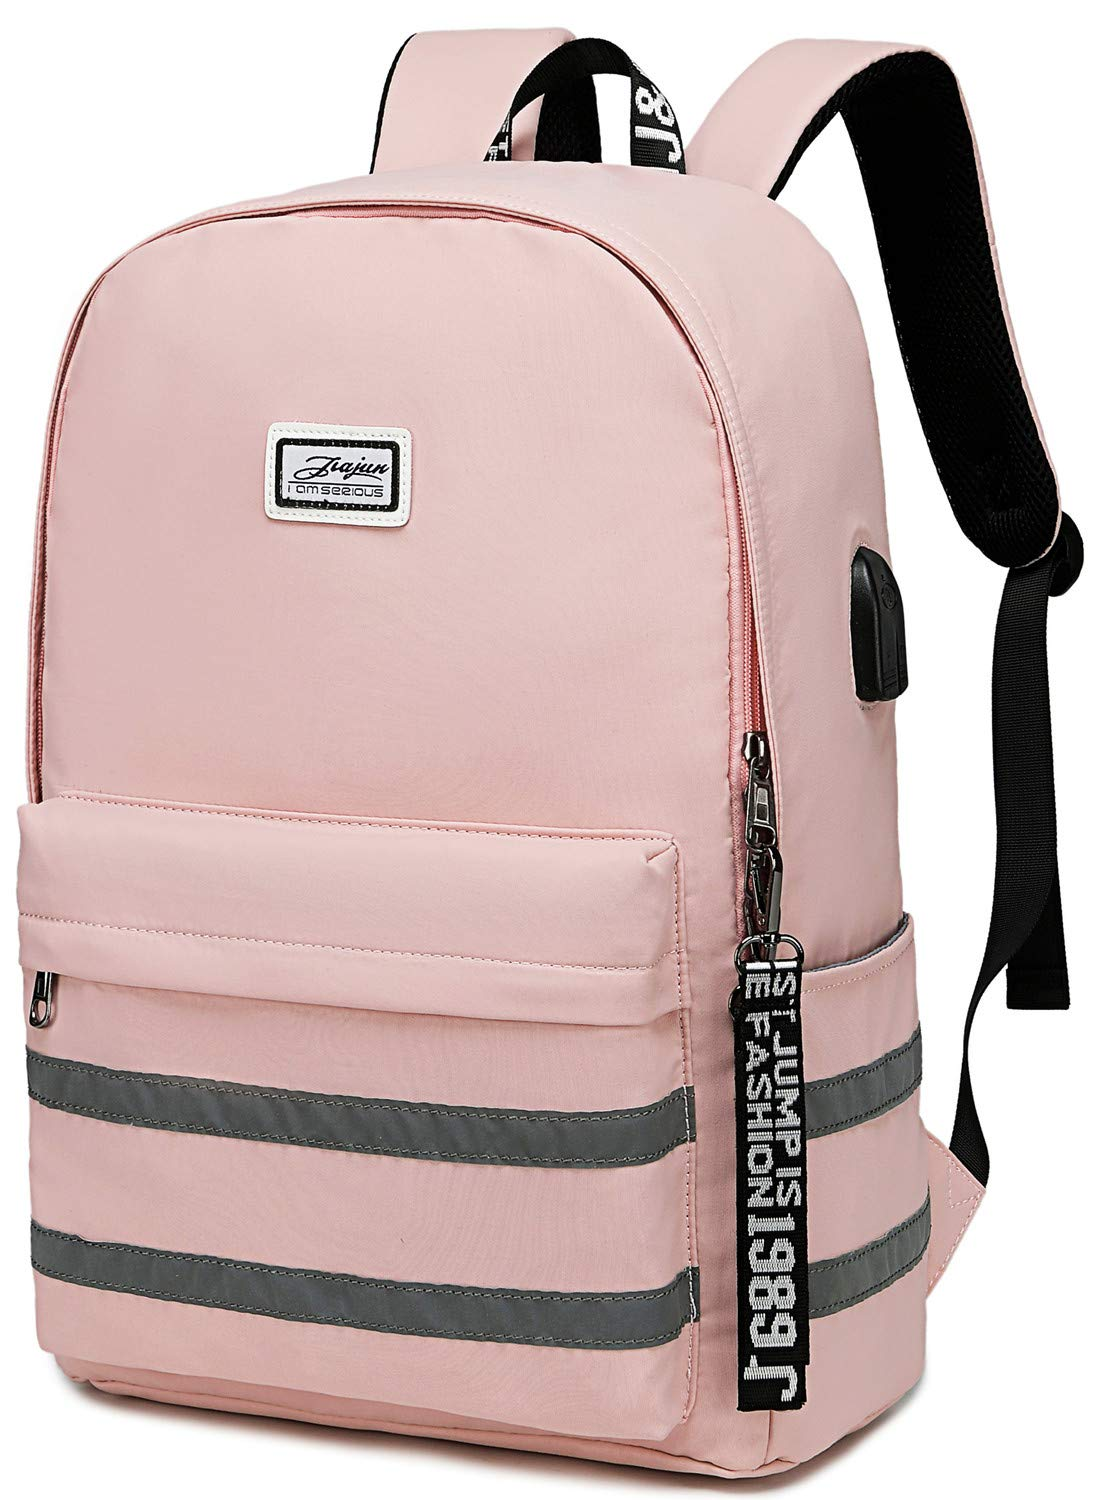 Girls School Laptop Backpacks Travel Womens College Backpack School Bag 15.6 inch USB Daypack Outdoor (9301 Pink) by BLUBOON